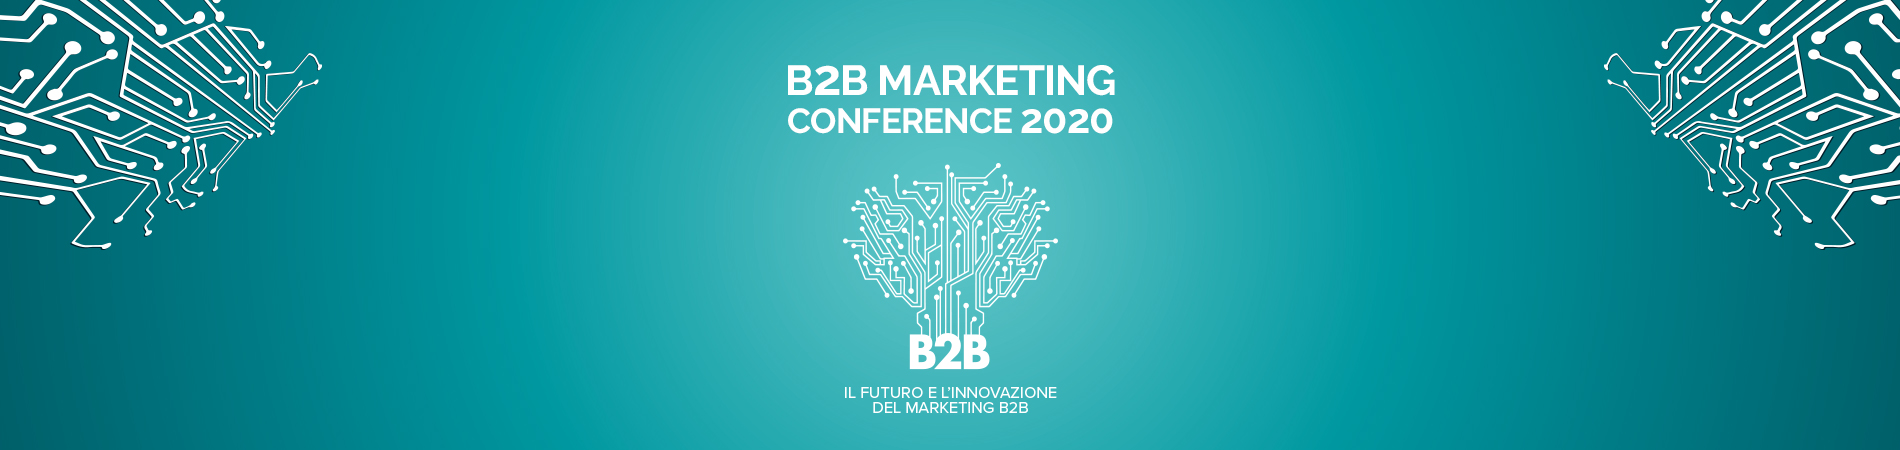 b2b-theconference-2019